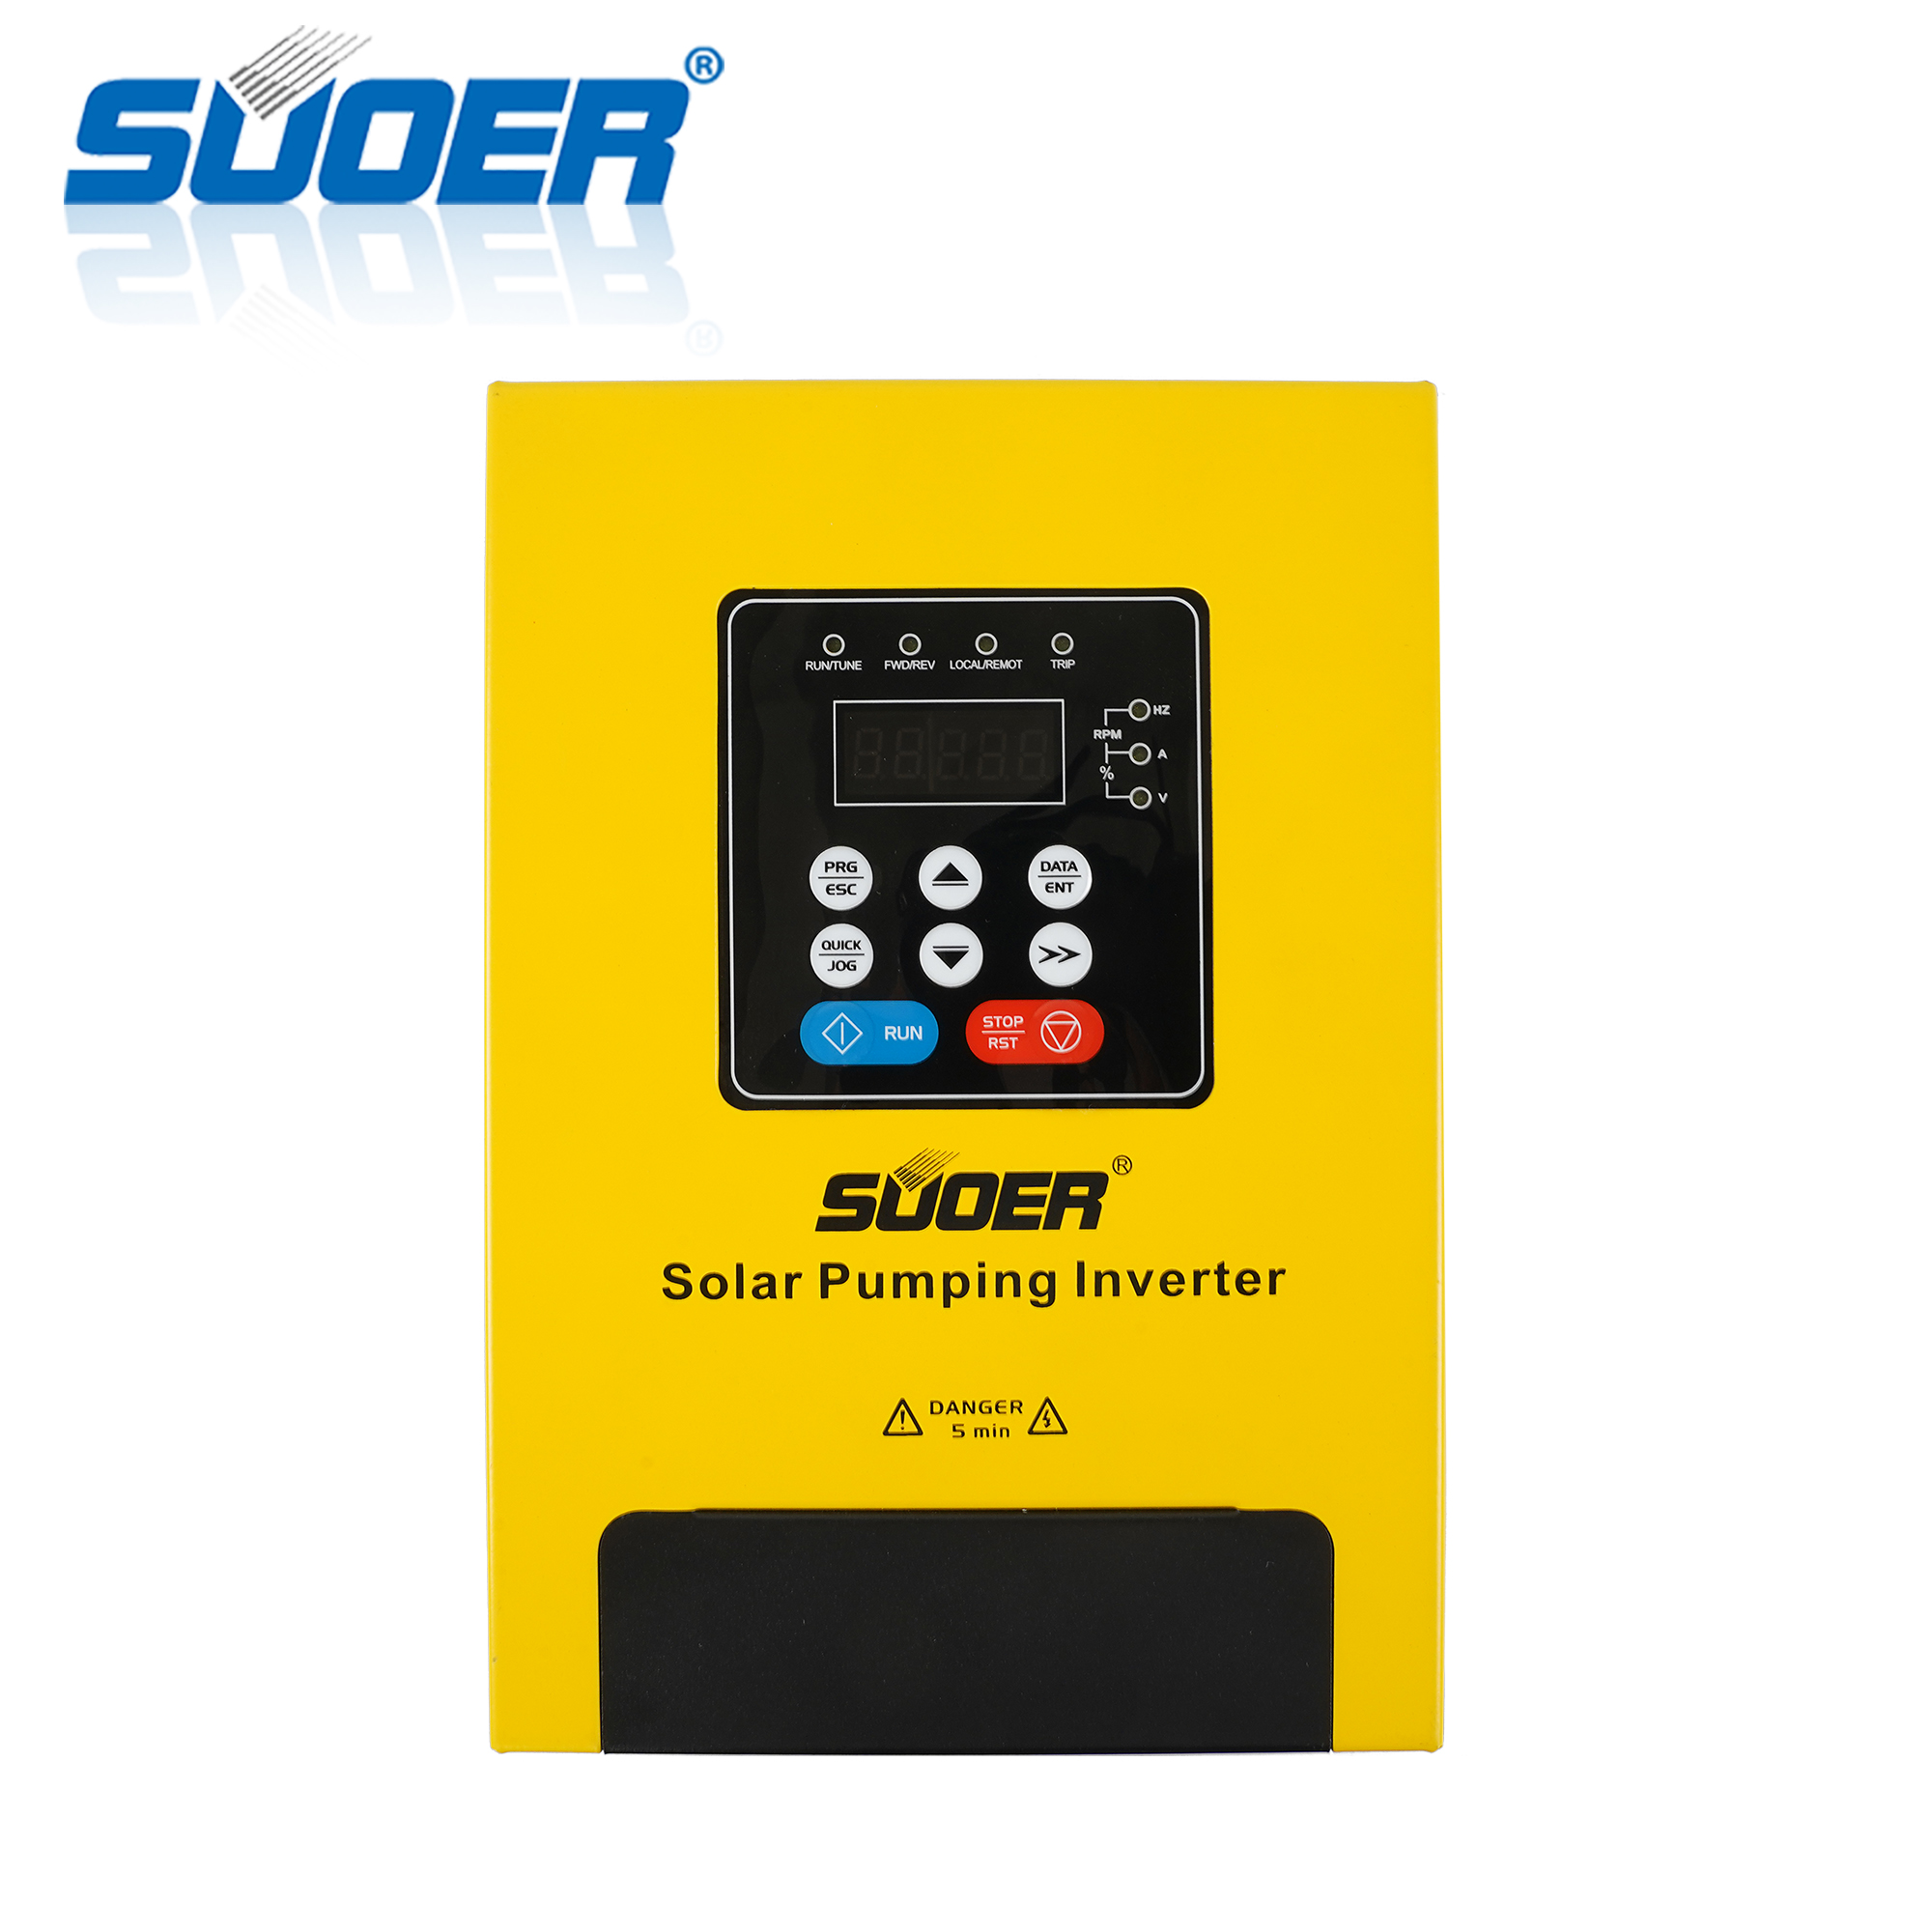 Suoer PV100-2R2G-SS high efficiency 220V 2.2kw automatic single-phase solar water pumping inverter